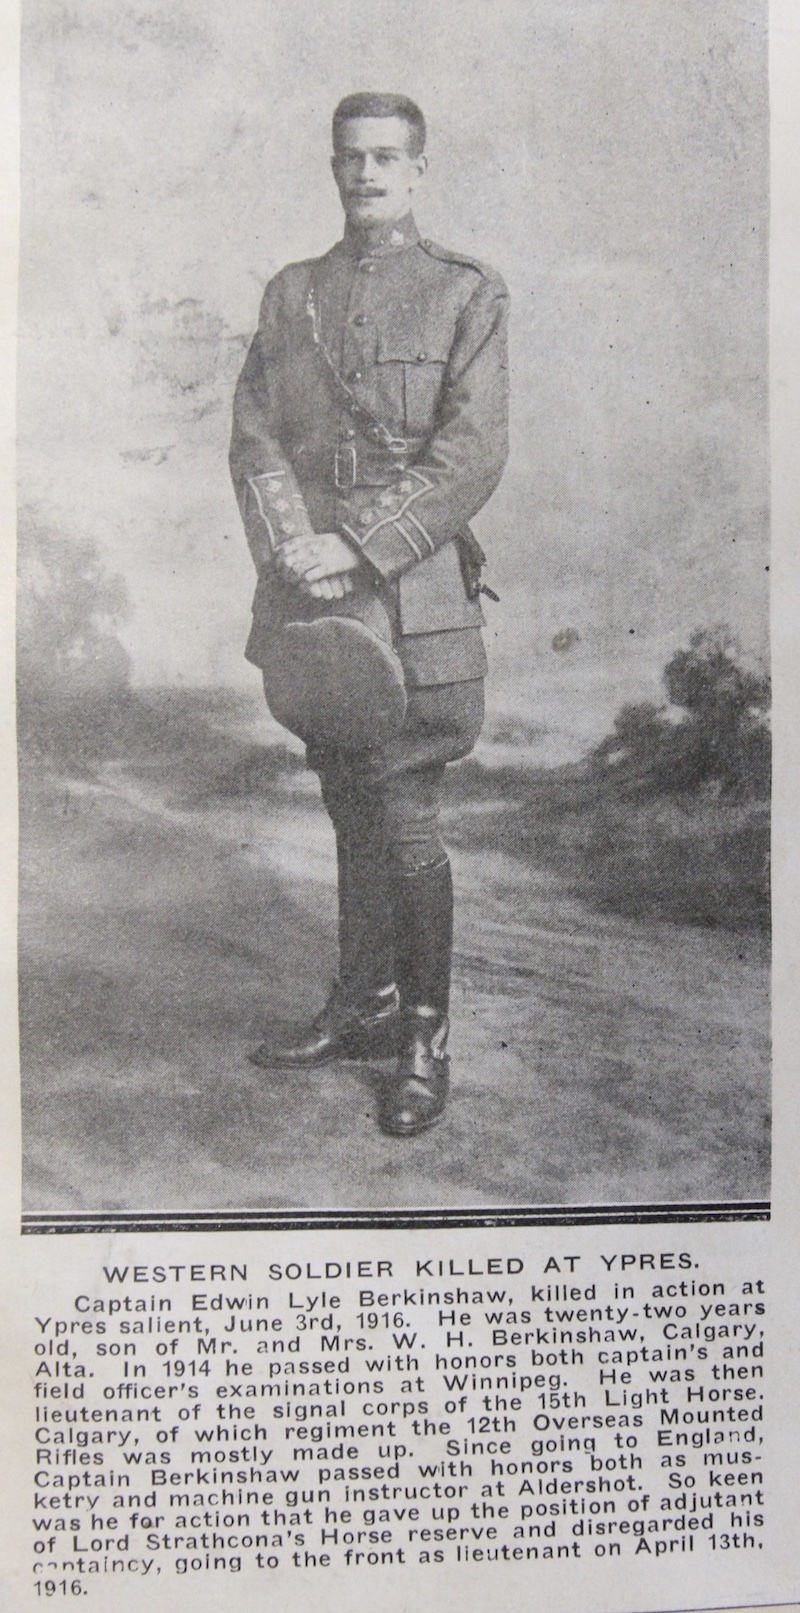 Photo of Edwin Berkinshaw– Submitted for the project Operation Picture Me. From the Annie Boyes collection courtesy of the Simcoe County Archives. http://www.simcoe.ca/dpt/arc